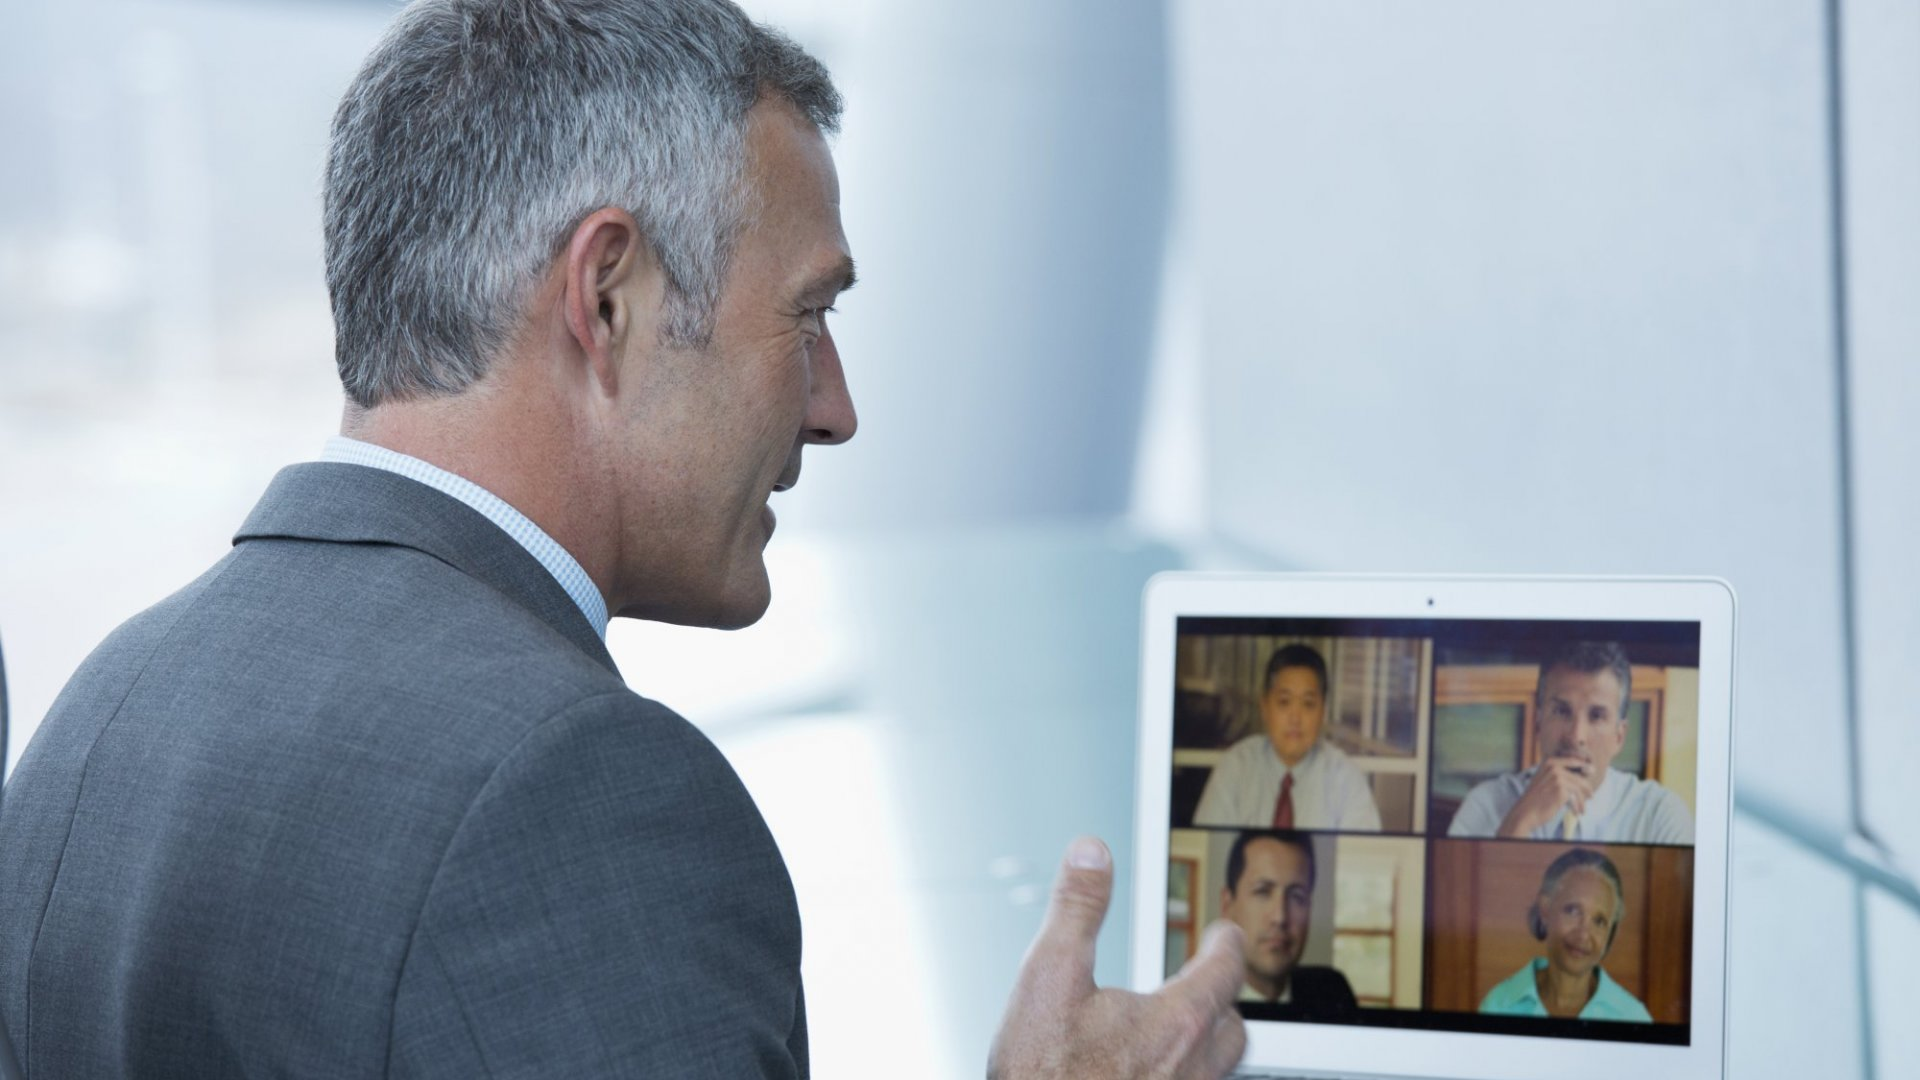 How to Make Virtual Meetings Productive